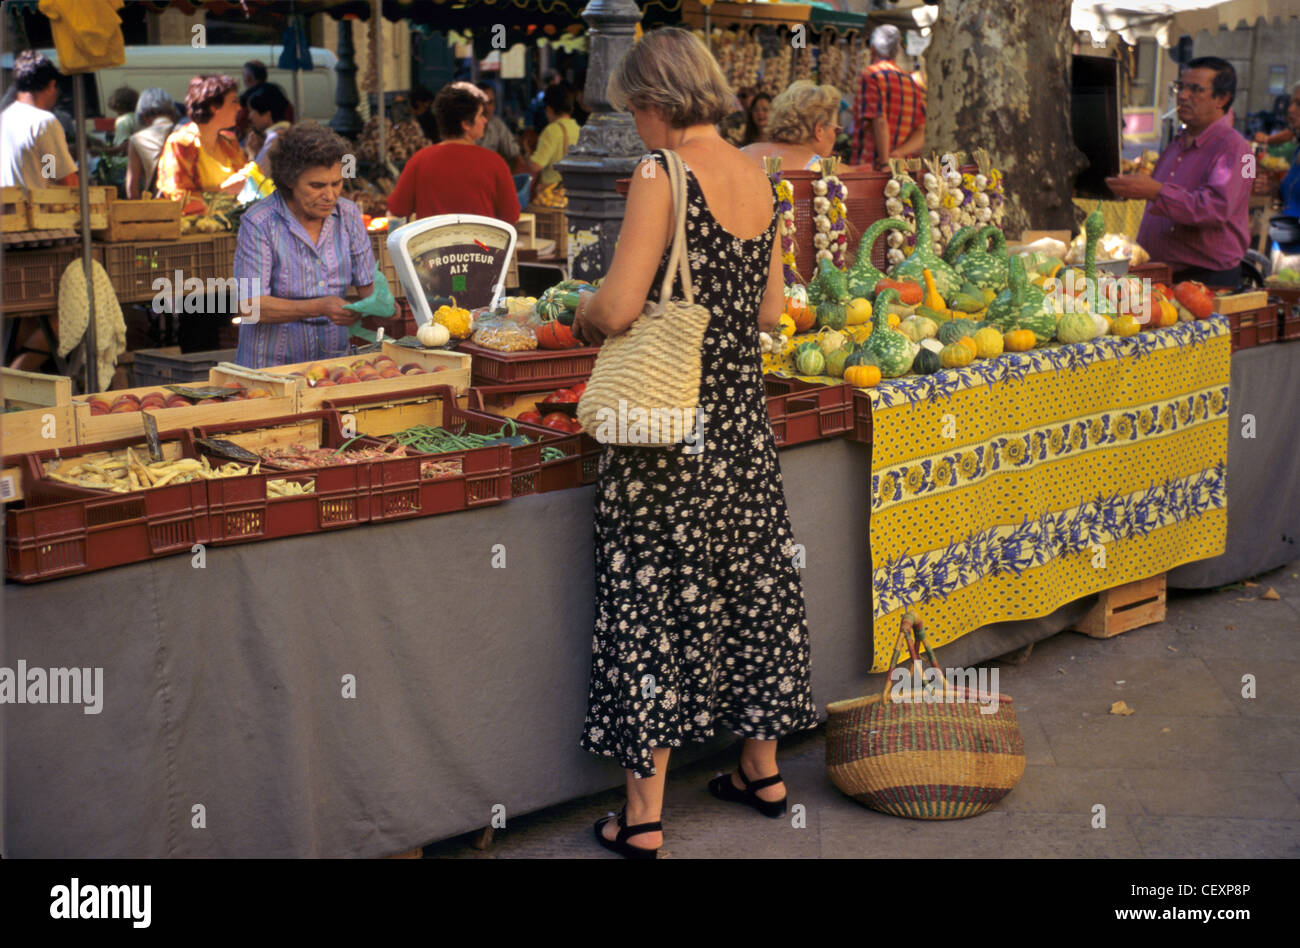 A Woman Shops at the Fruit and Vegetable Morning Market, Aix-en-Provence, France - Stock Image